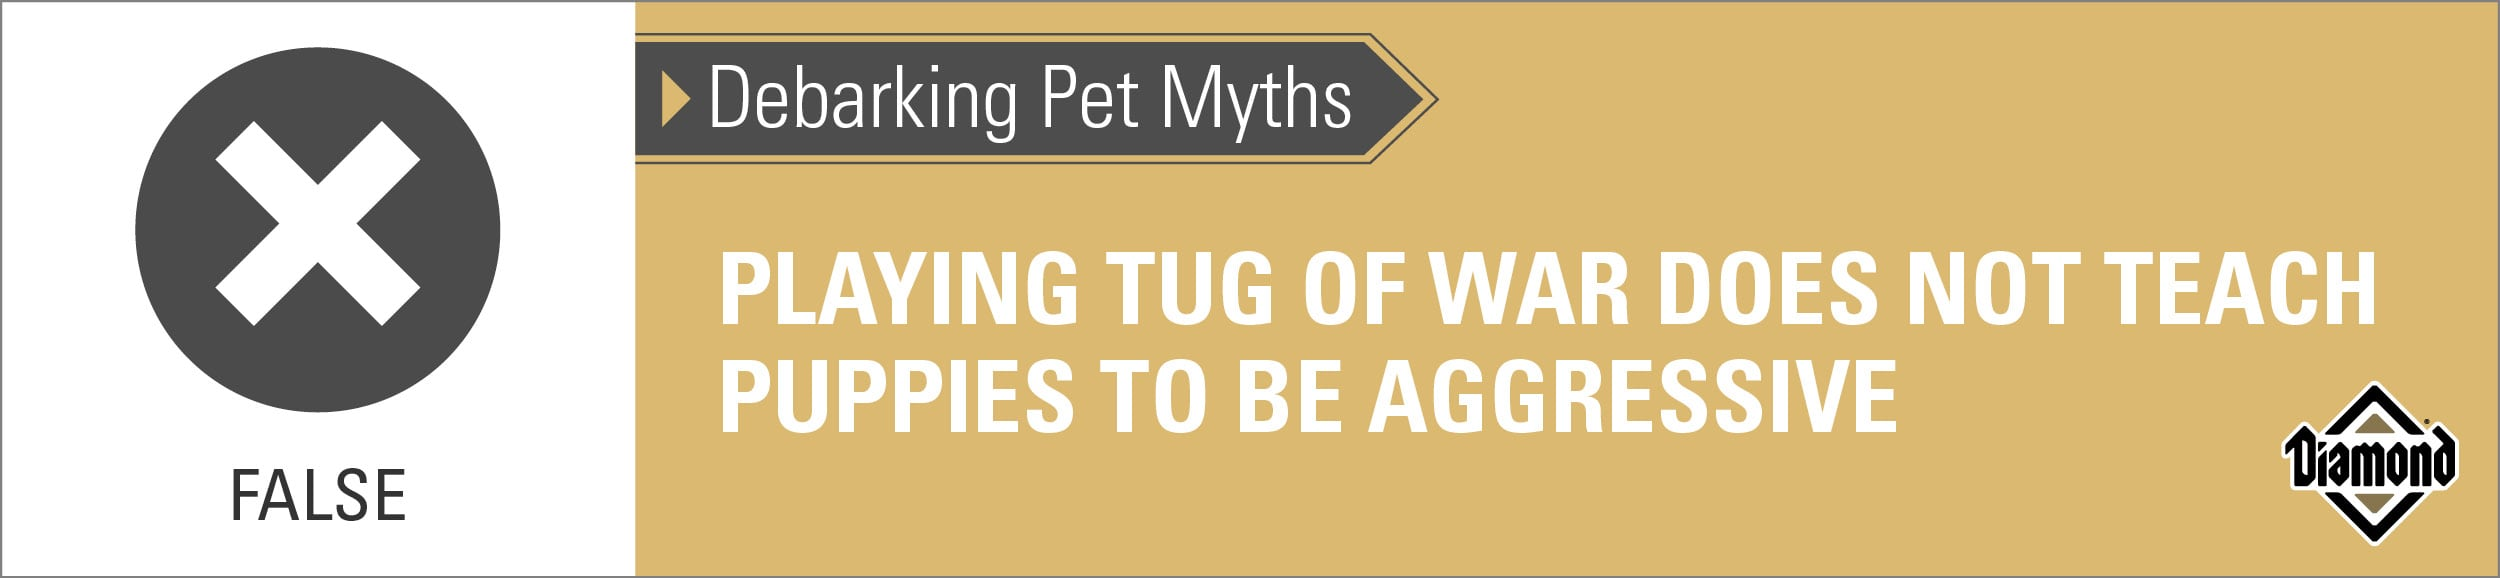 False: Playing Tug of War Properly Does Not Teach Puppies to Be Aggressive   Diamond Pet Foods